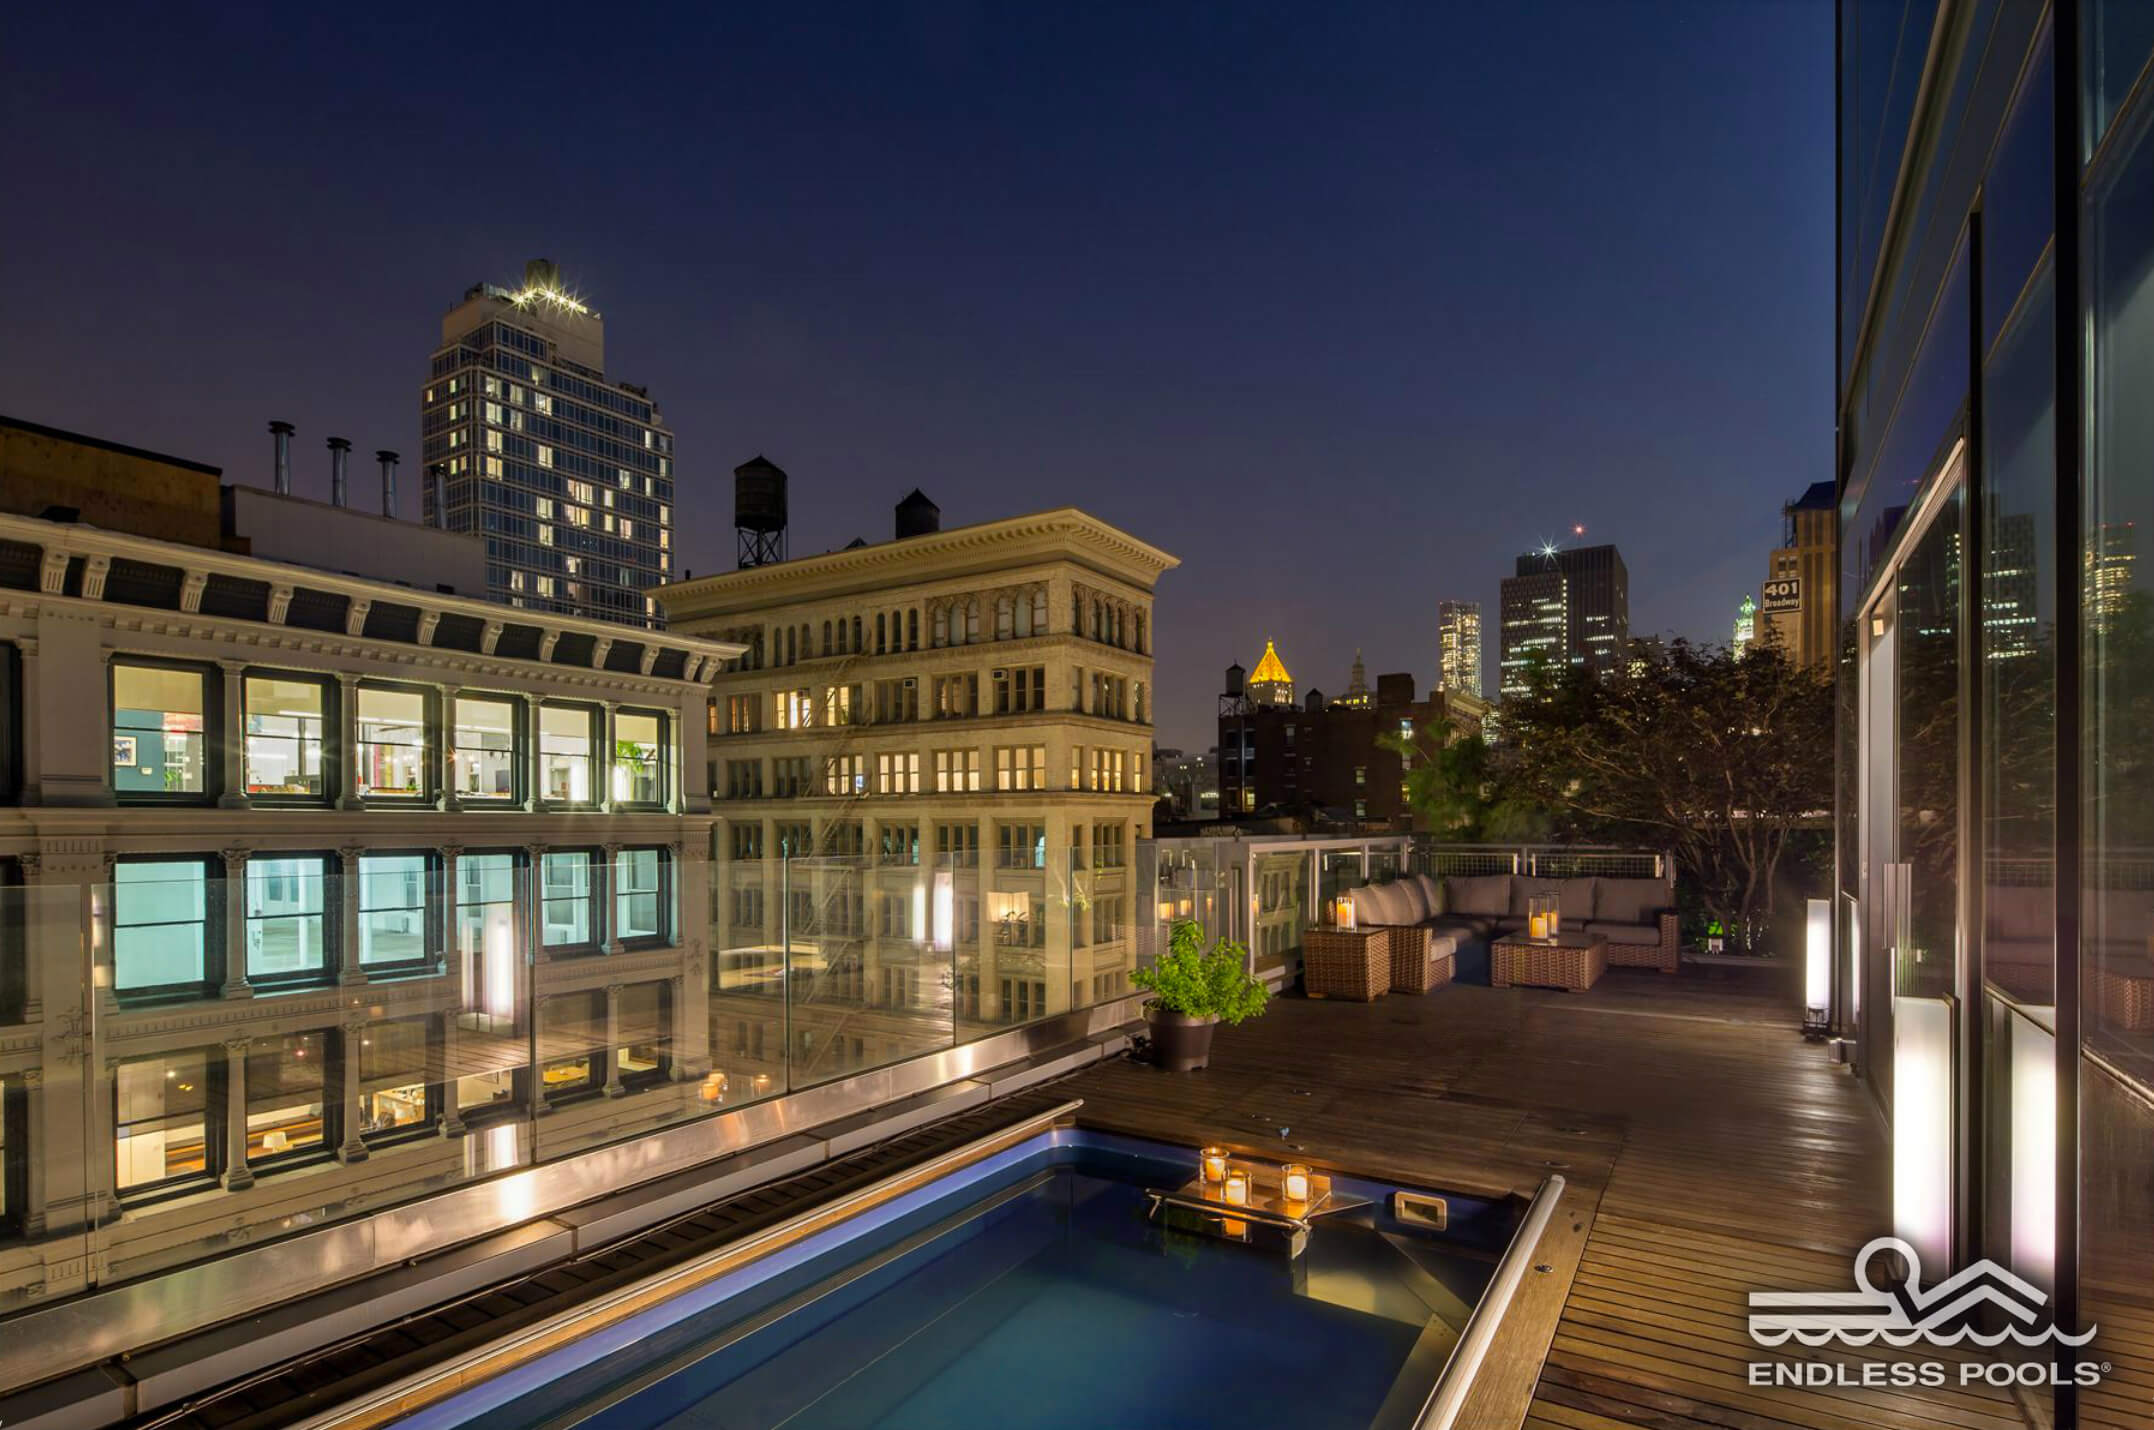 a rooftop Endless Pool at night in New York City's SoHo district